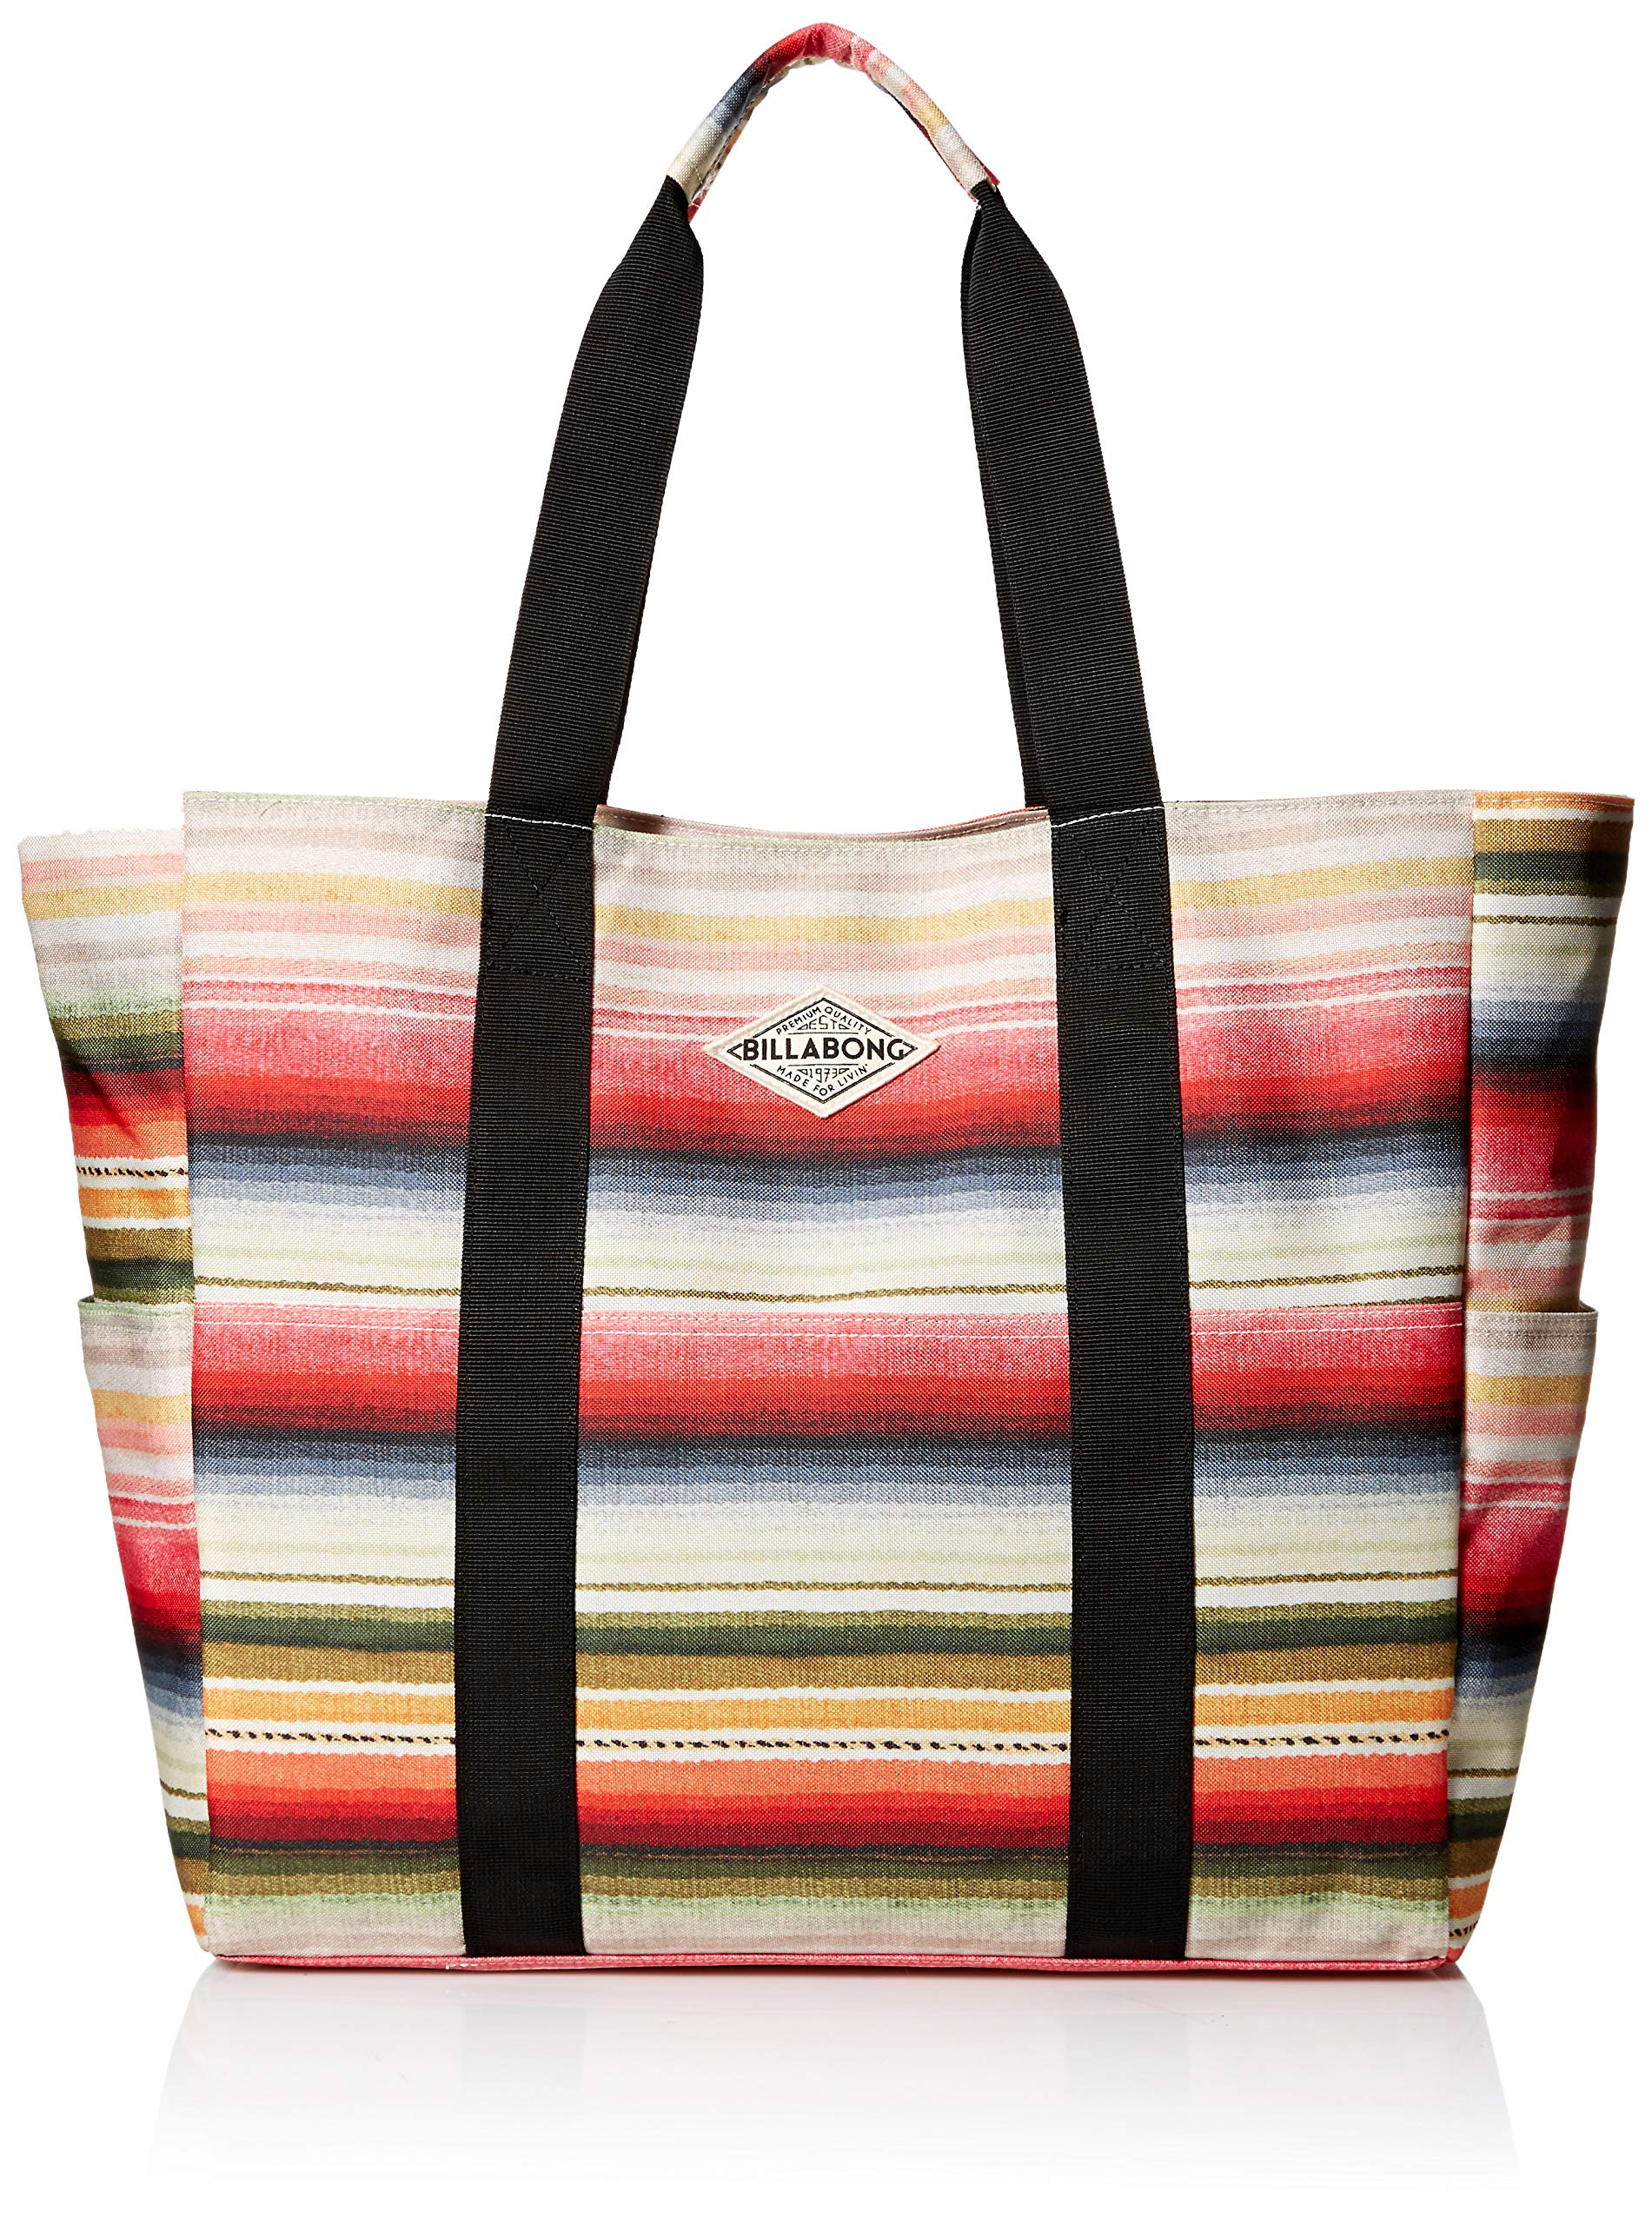 Billabong Women's Totally Totes Tote, Serape, ONE